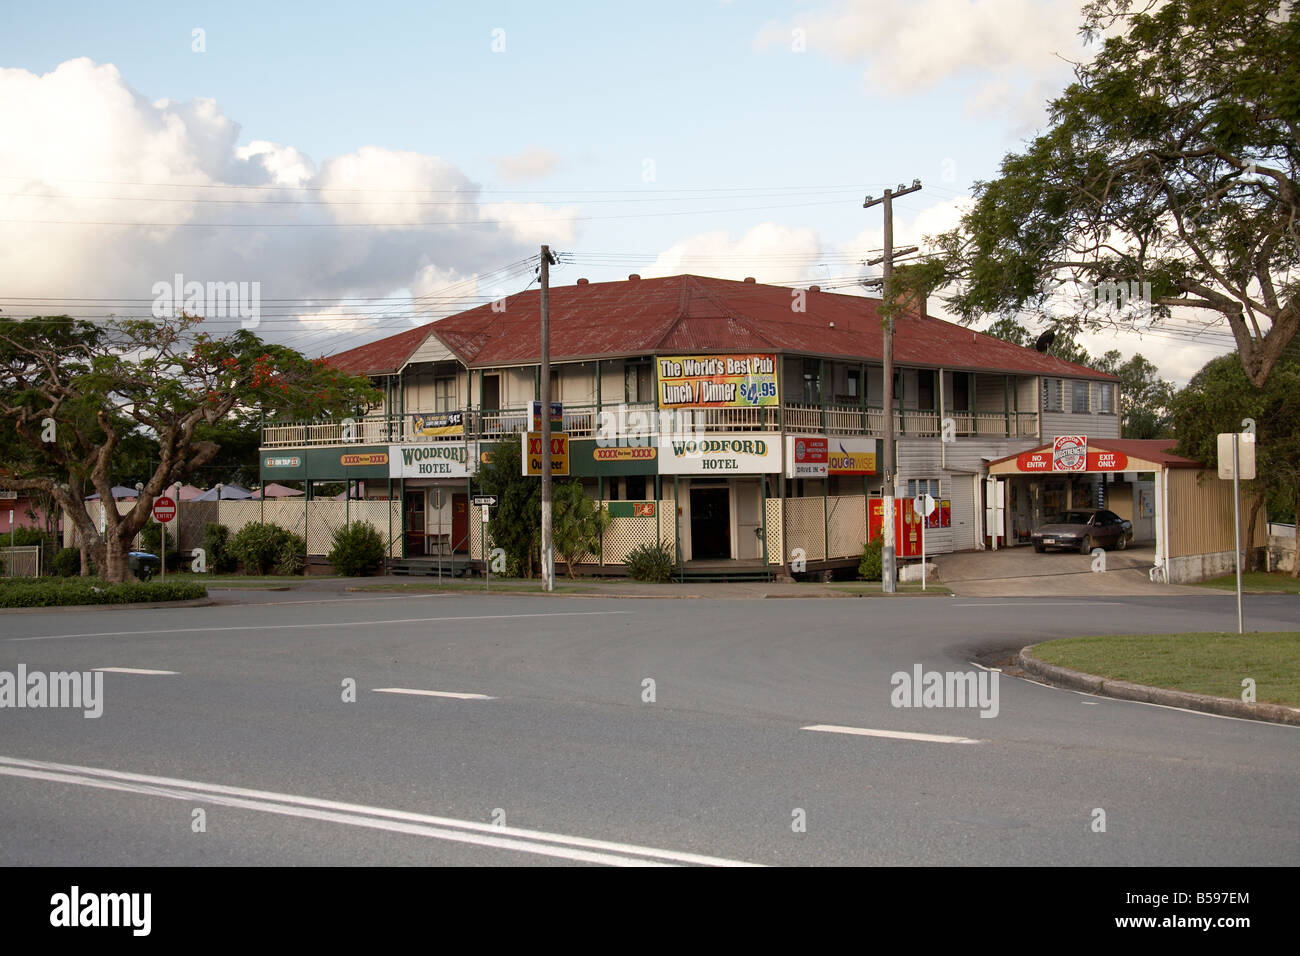 Woodford Hotel in Queensland QLD Australia - Stock Image